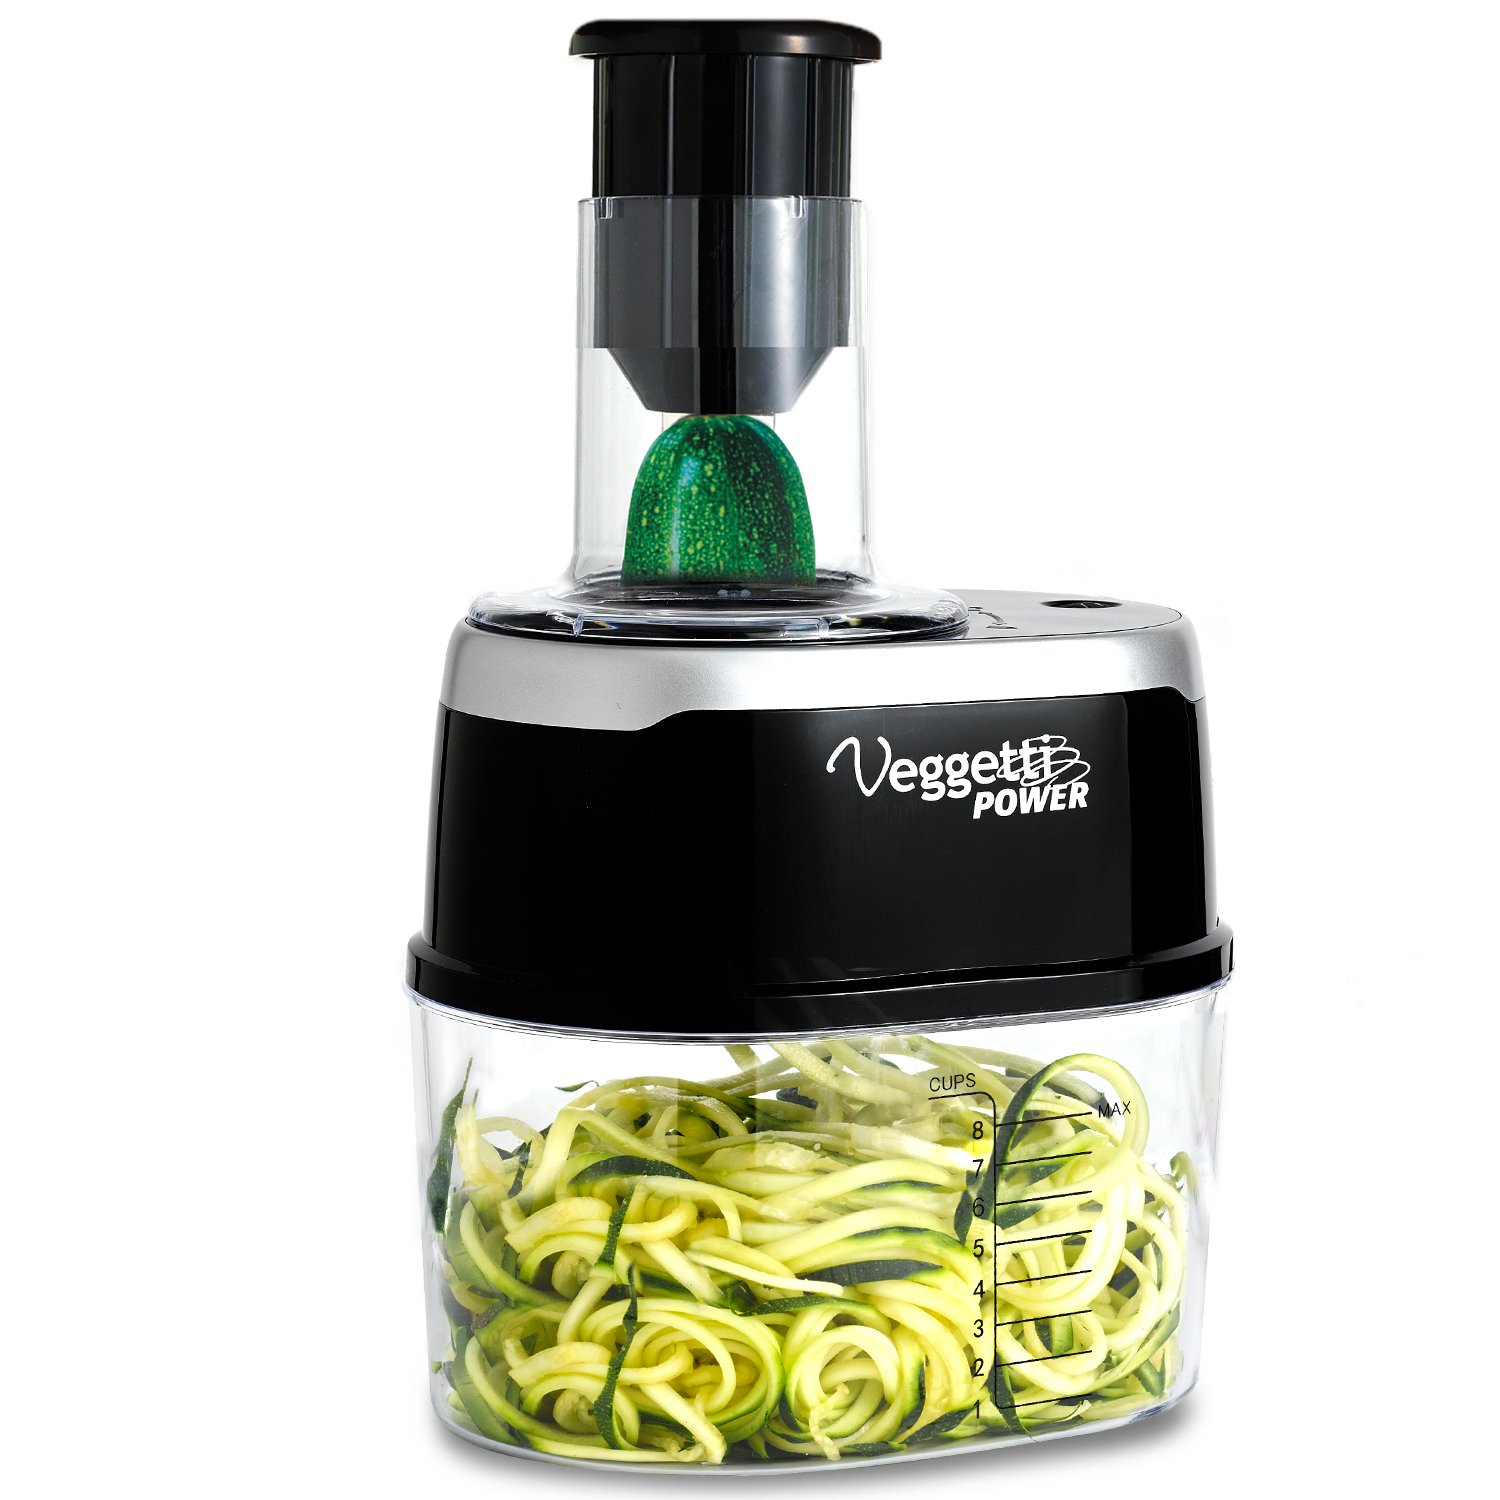 ONTEL Veggetti Power 4-in-1 Electric Spiralizer